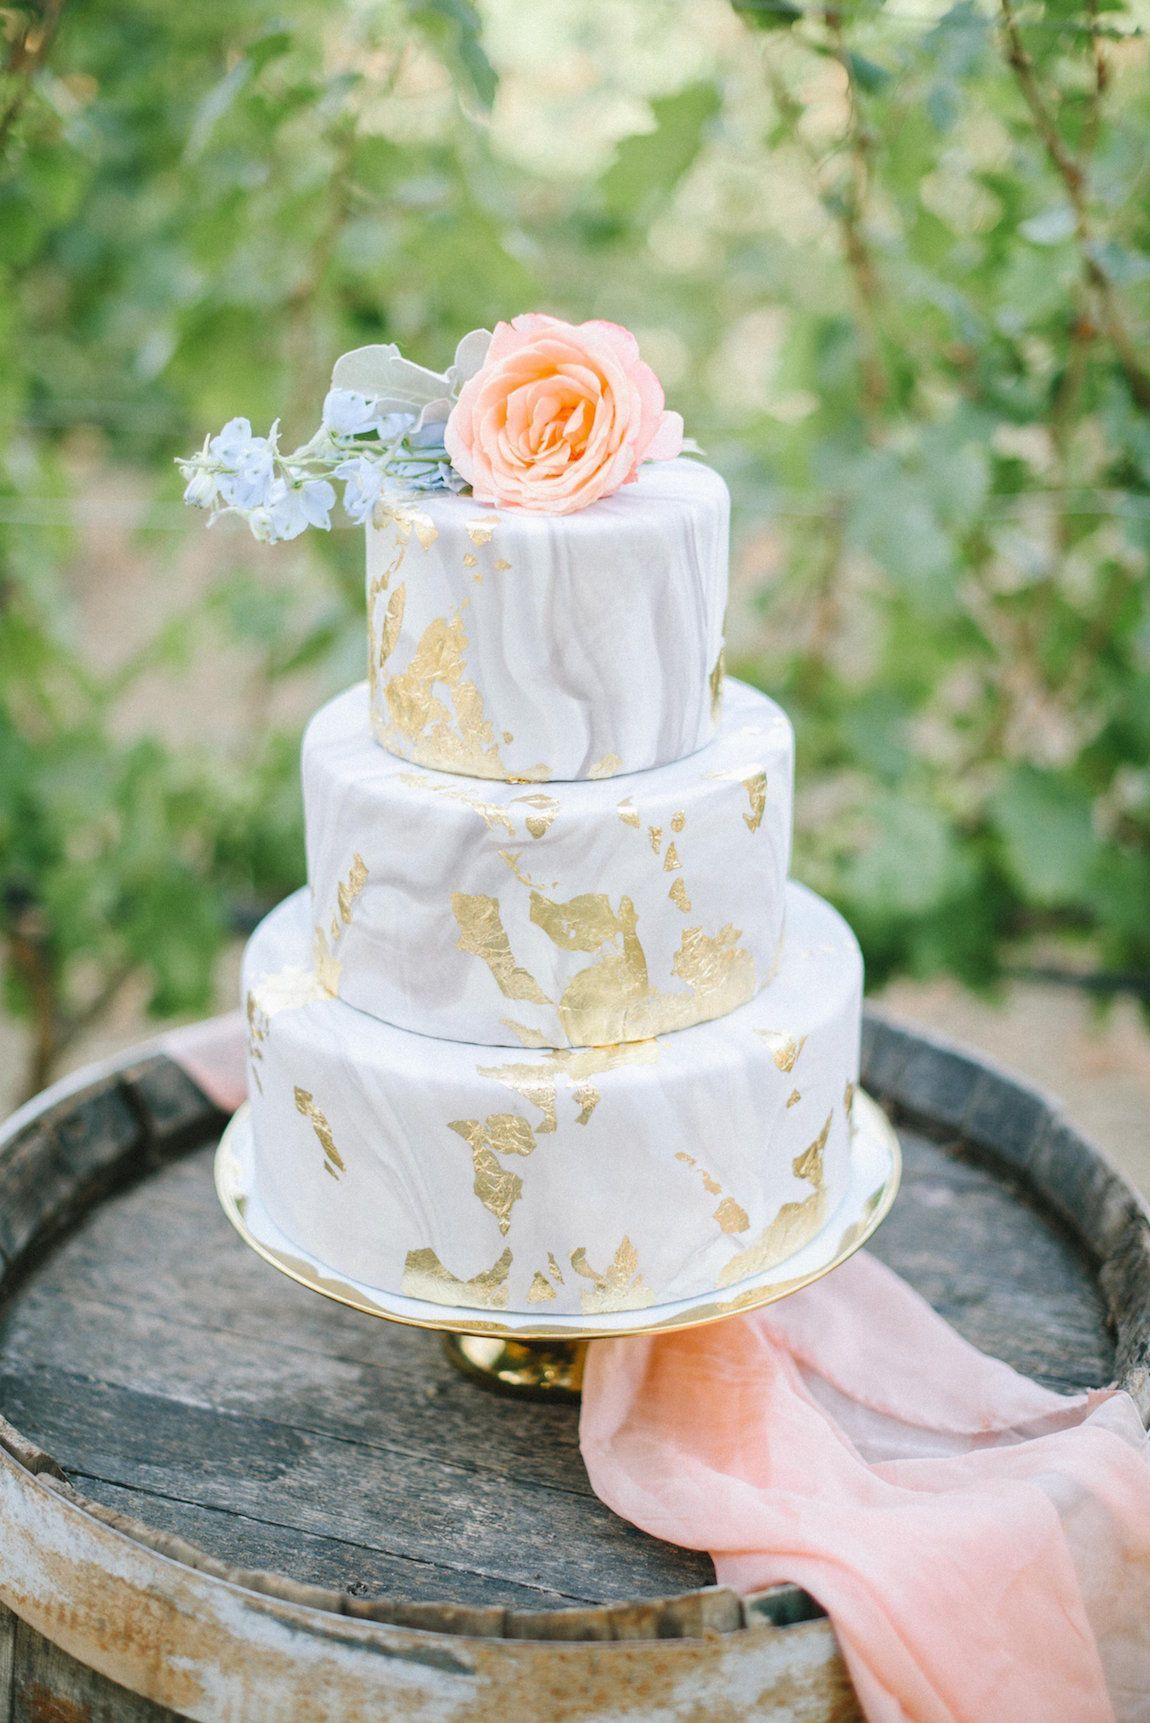 A beautiful gray and gold marbled wedding cake with peach accents